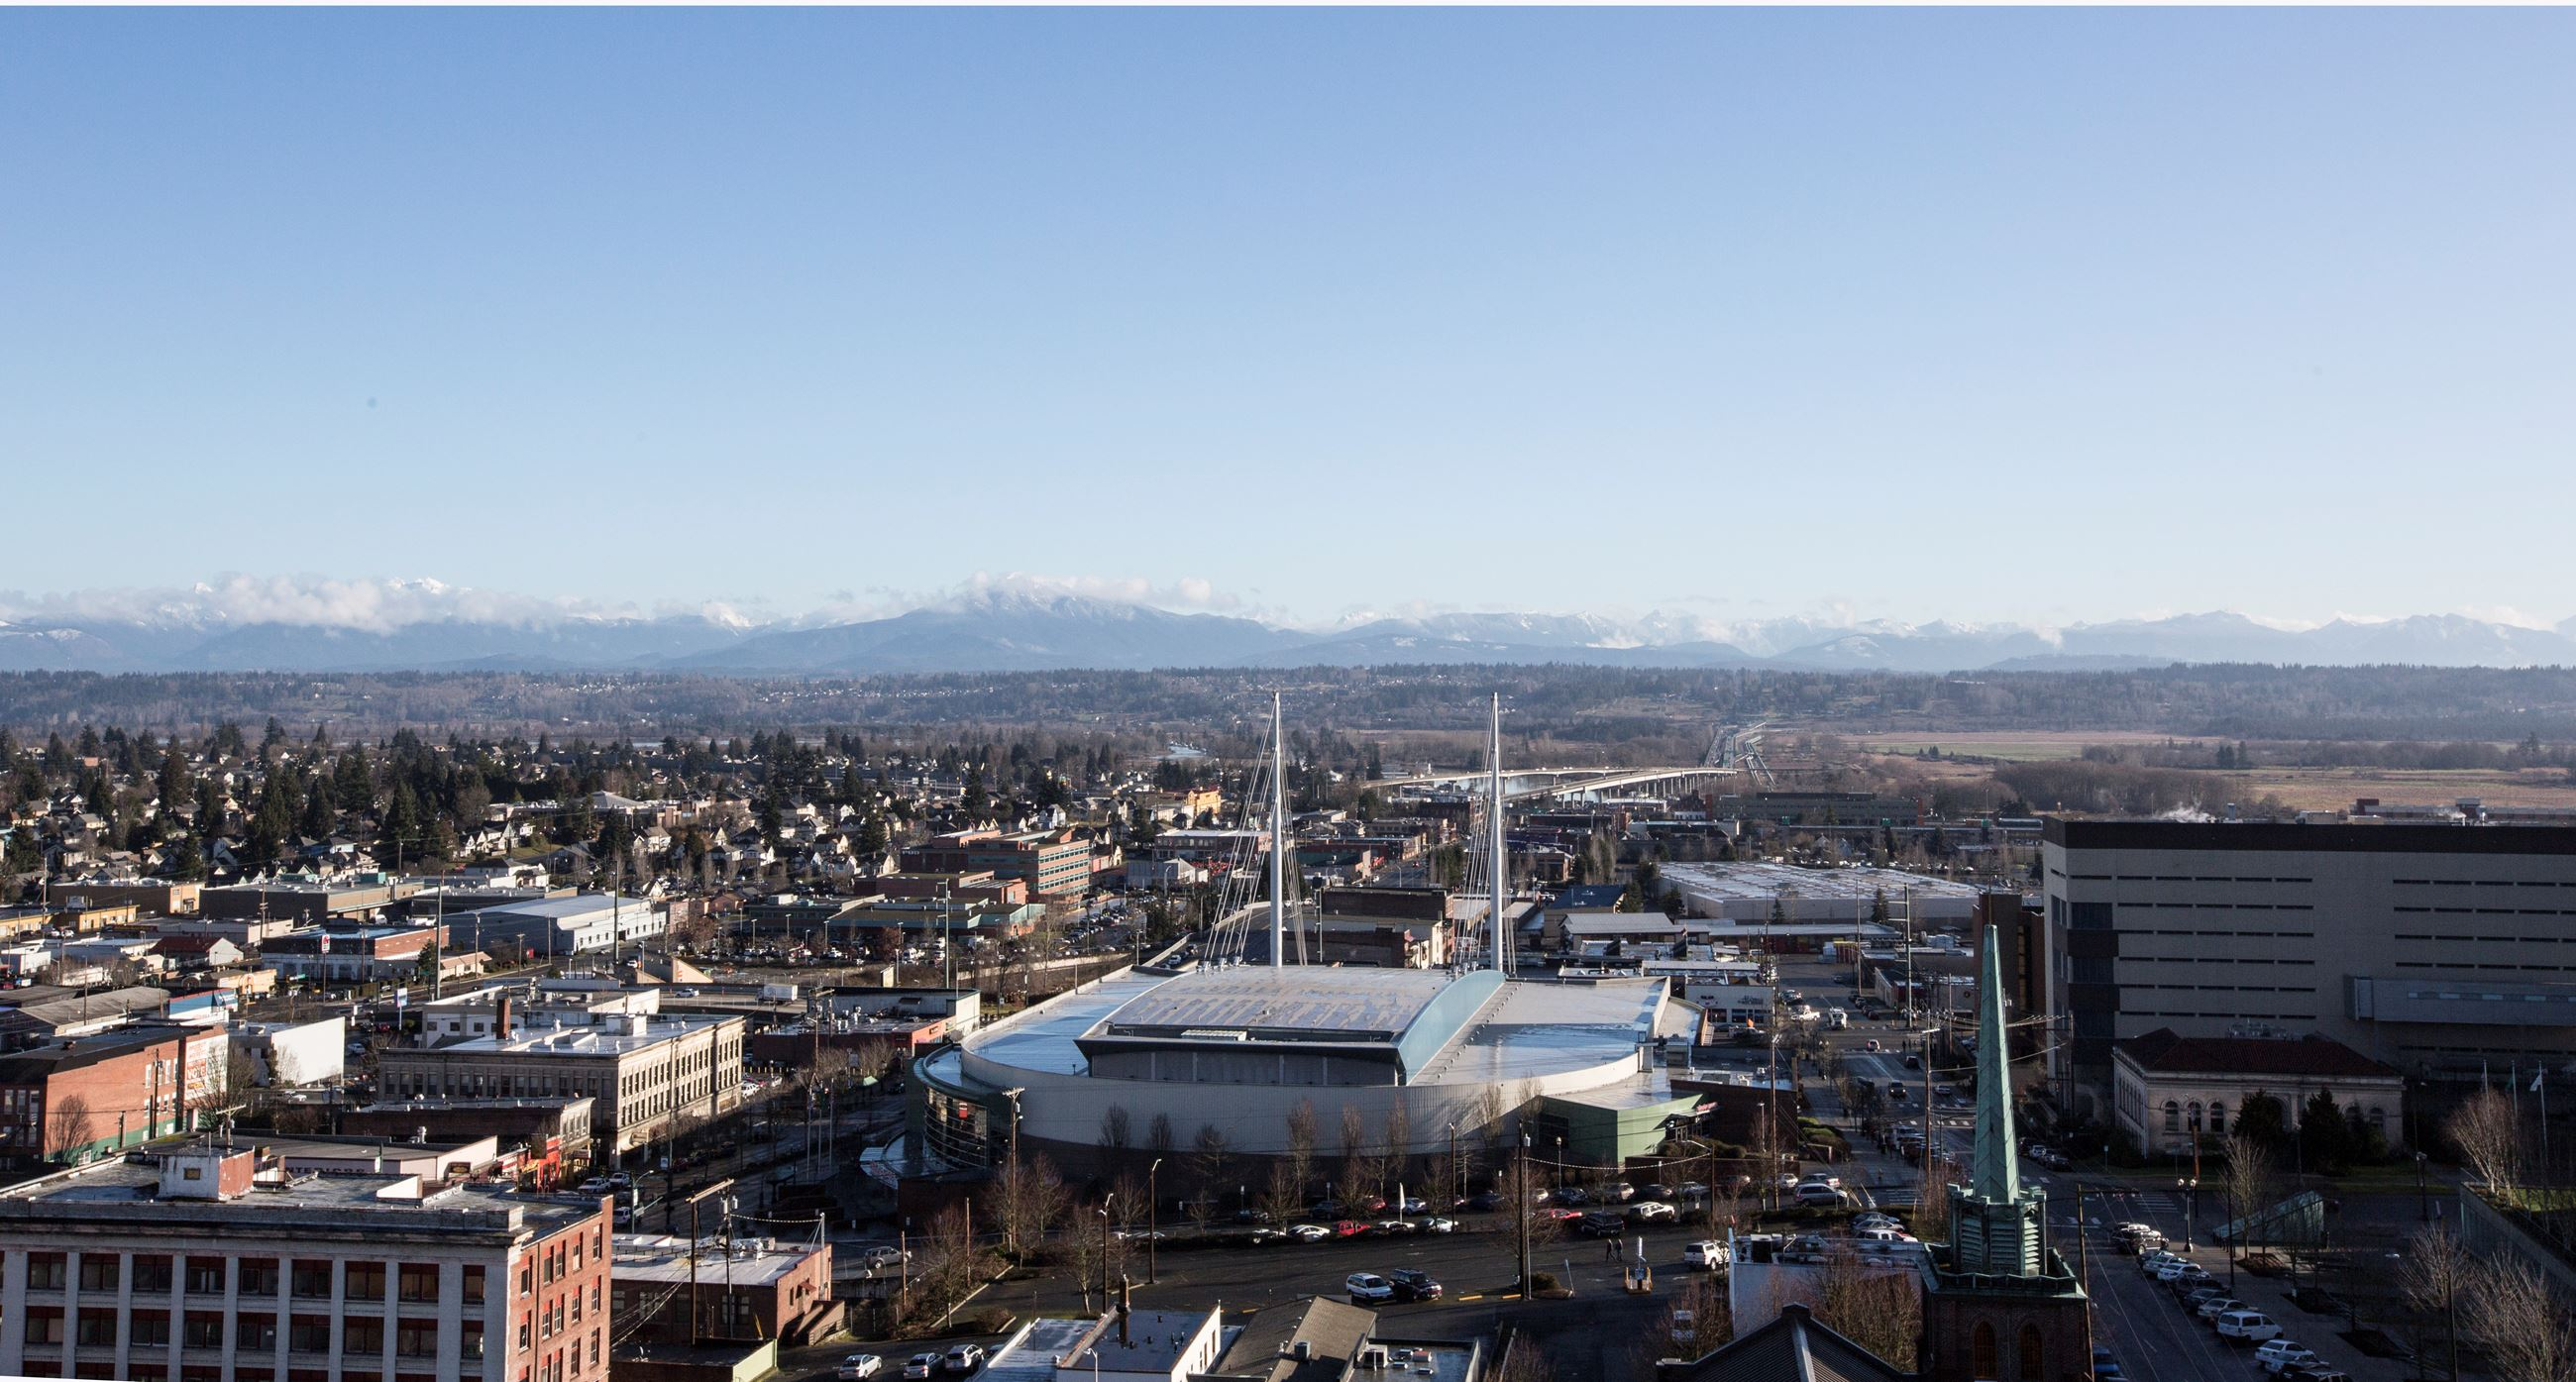 View of Everett from City Hall rooftop